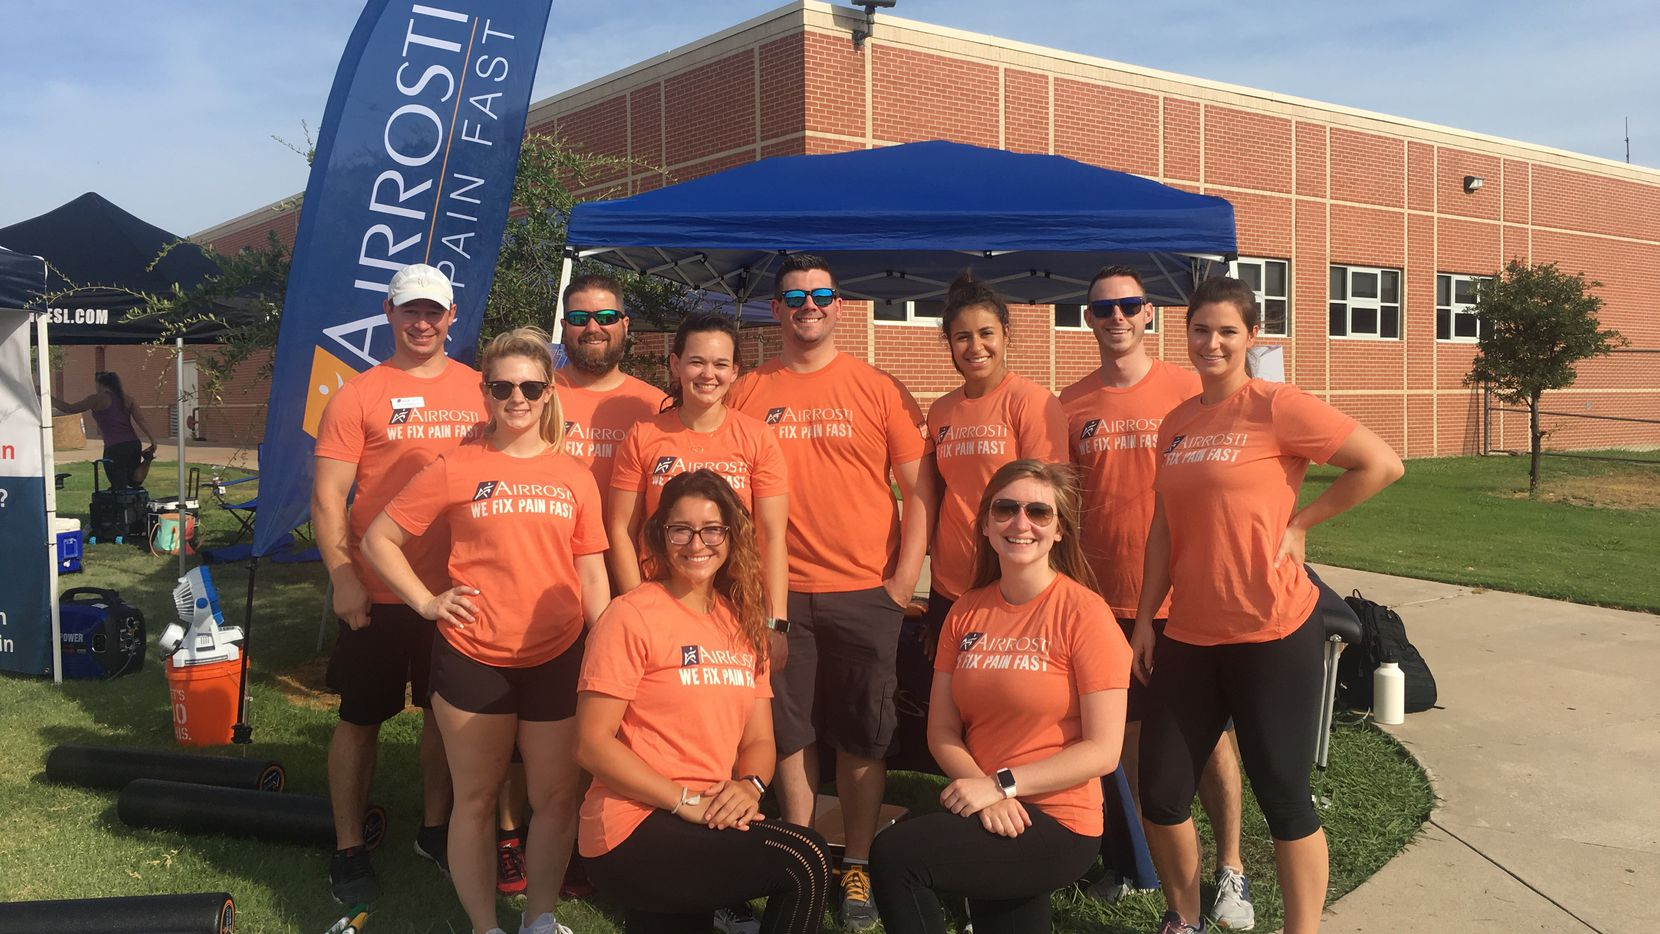 Airrosti Rehab Centers treatment teams helped with athlete services at a Camp Gladiator event.